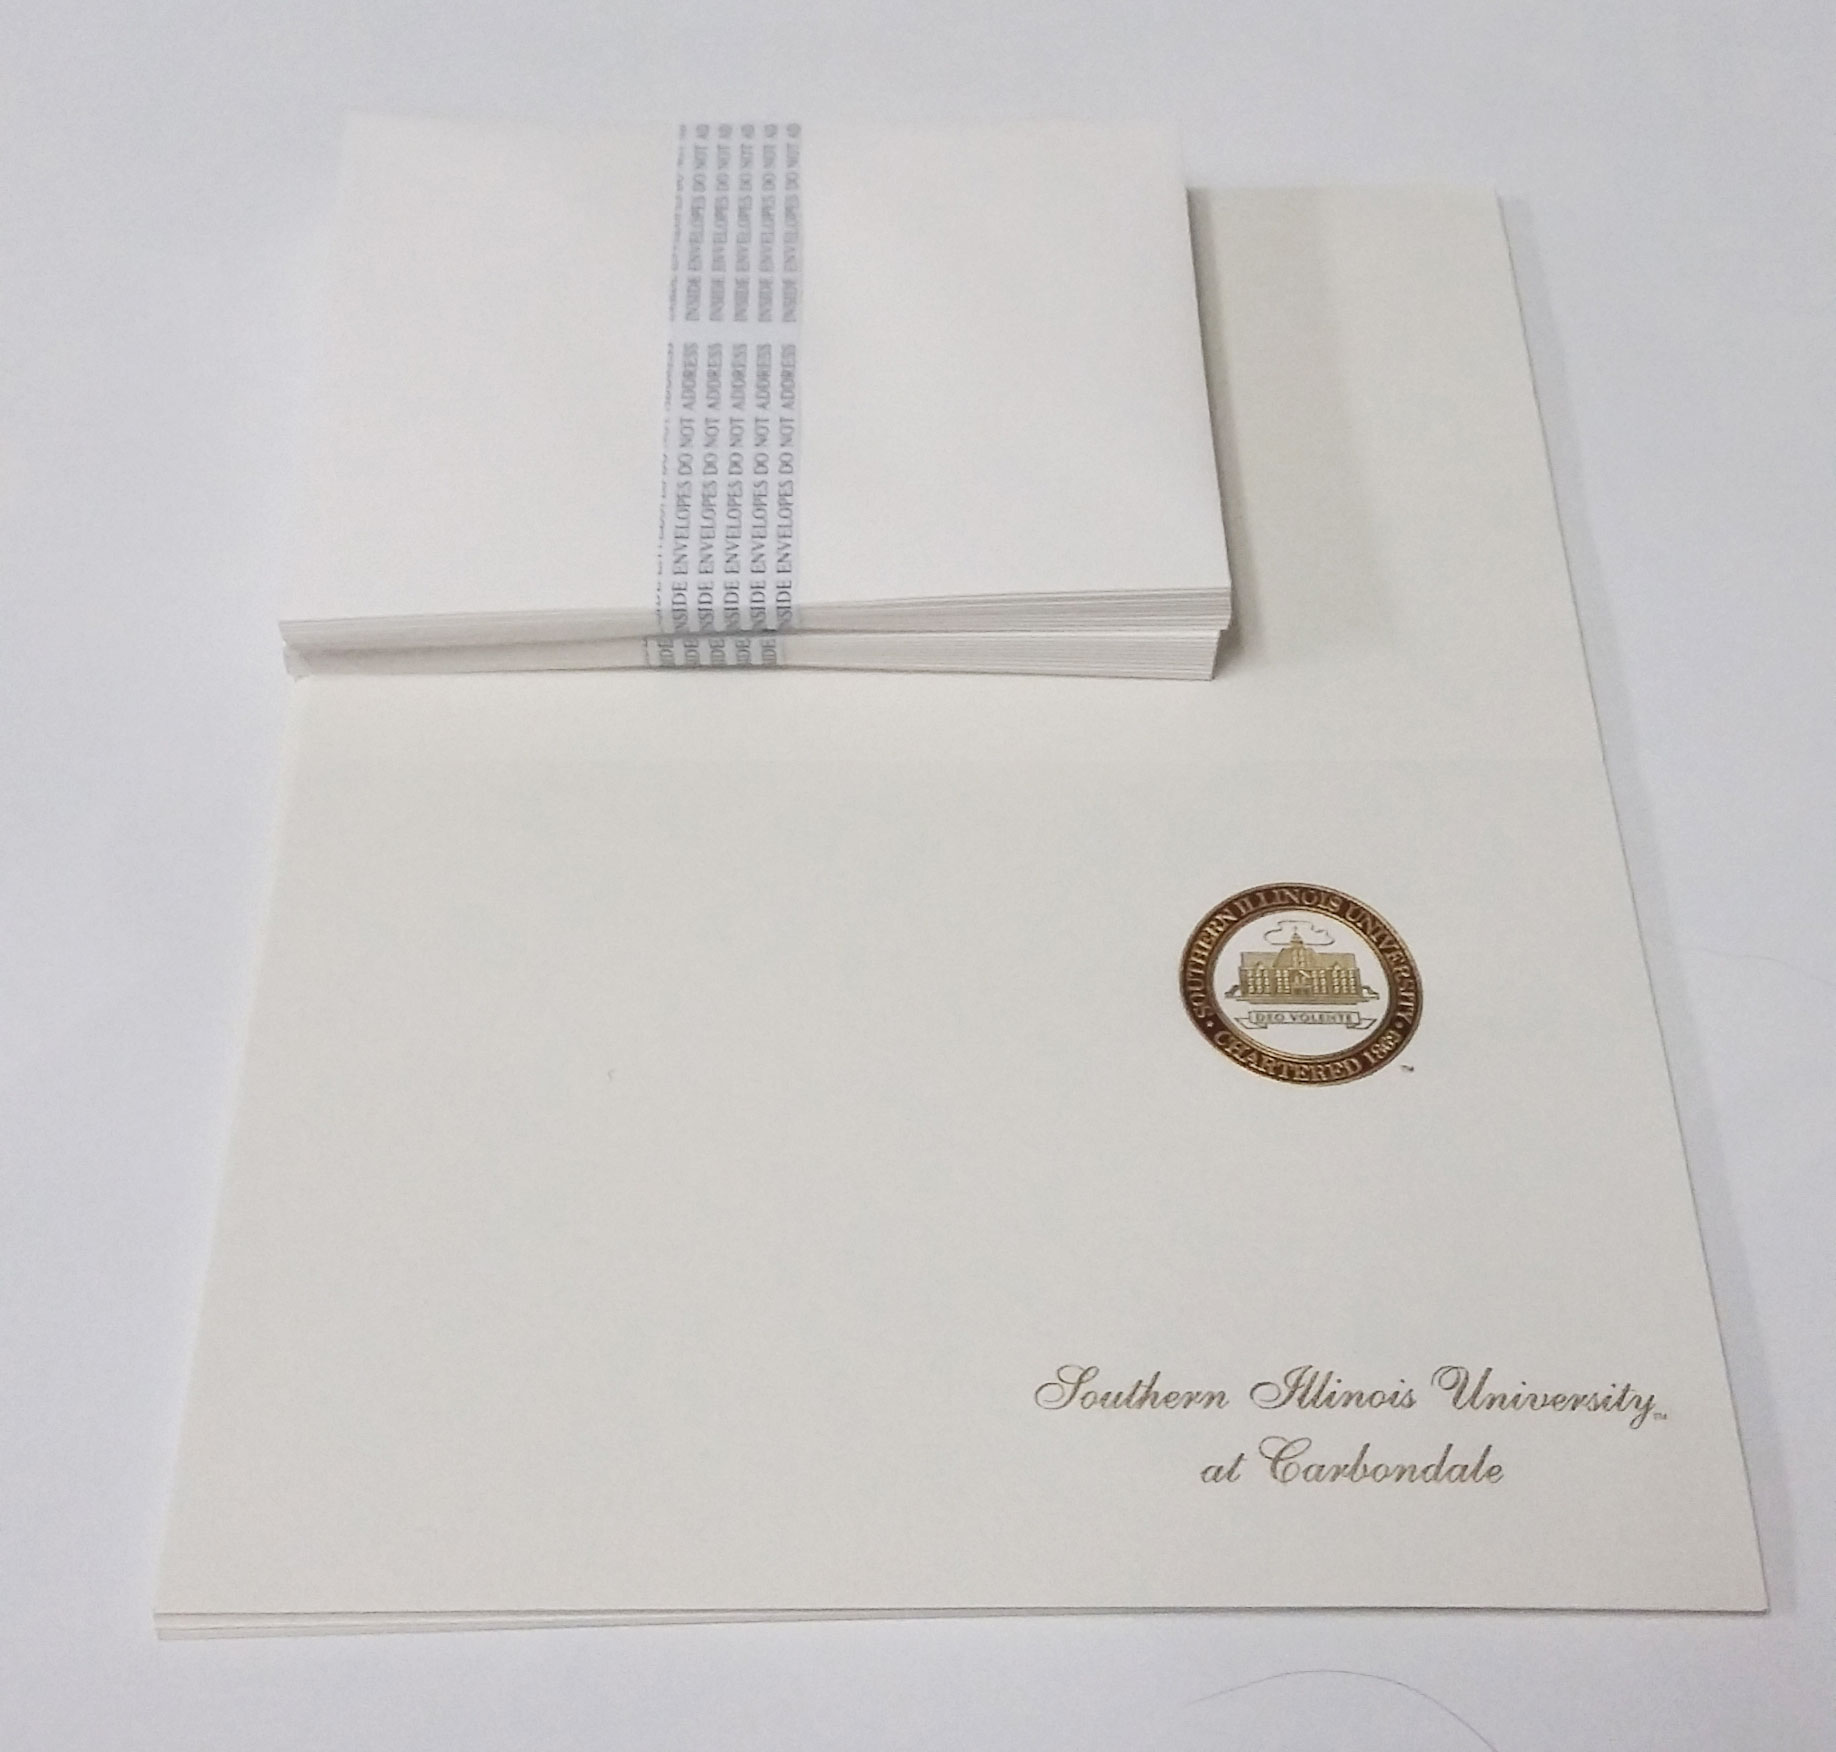 Image for the SIUC 20 BLANK DIY ANNOUNCEMENTS W/ ENVELOPES SET product